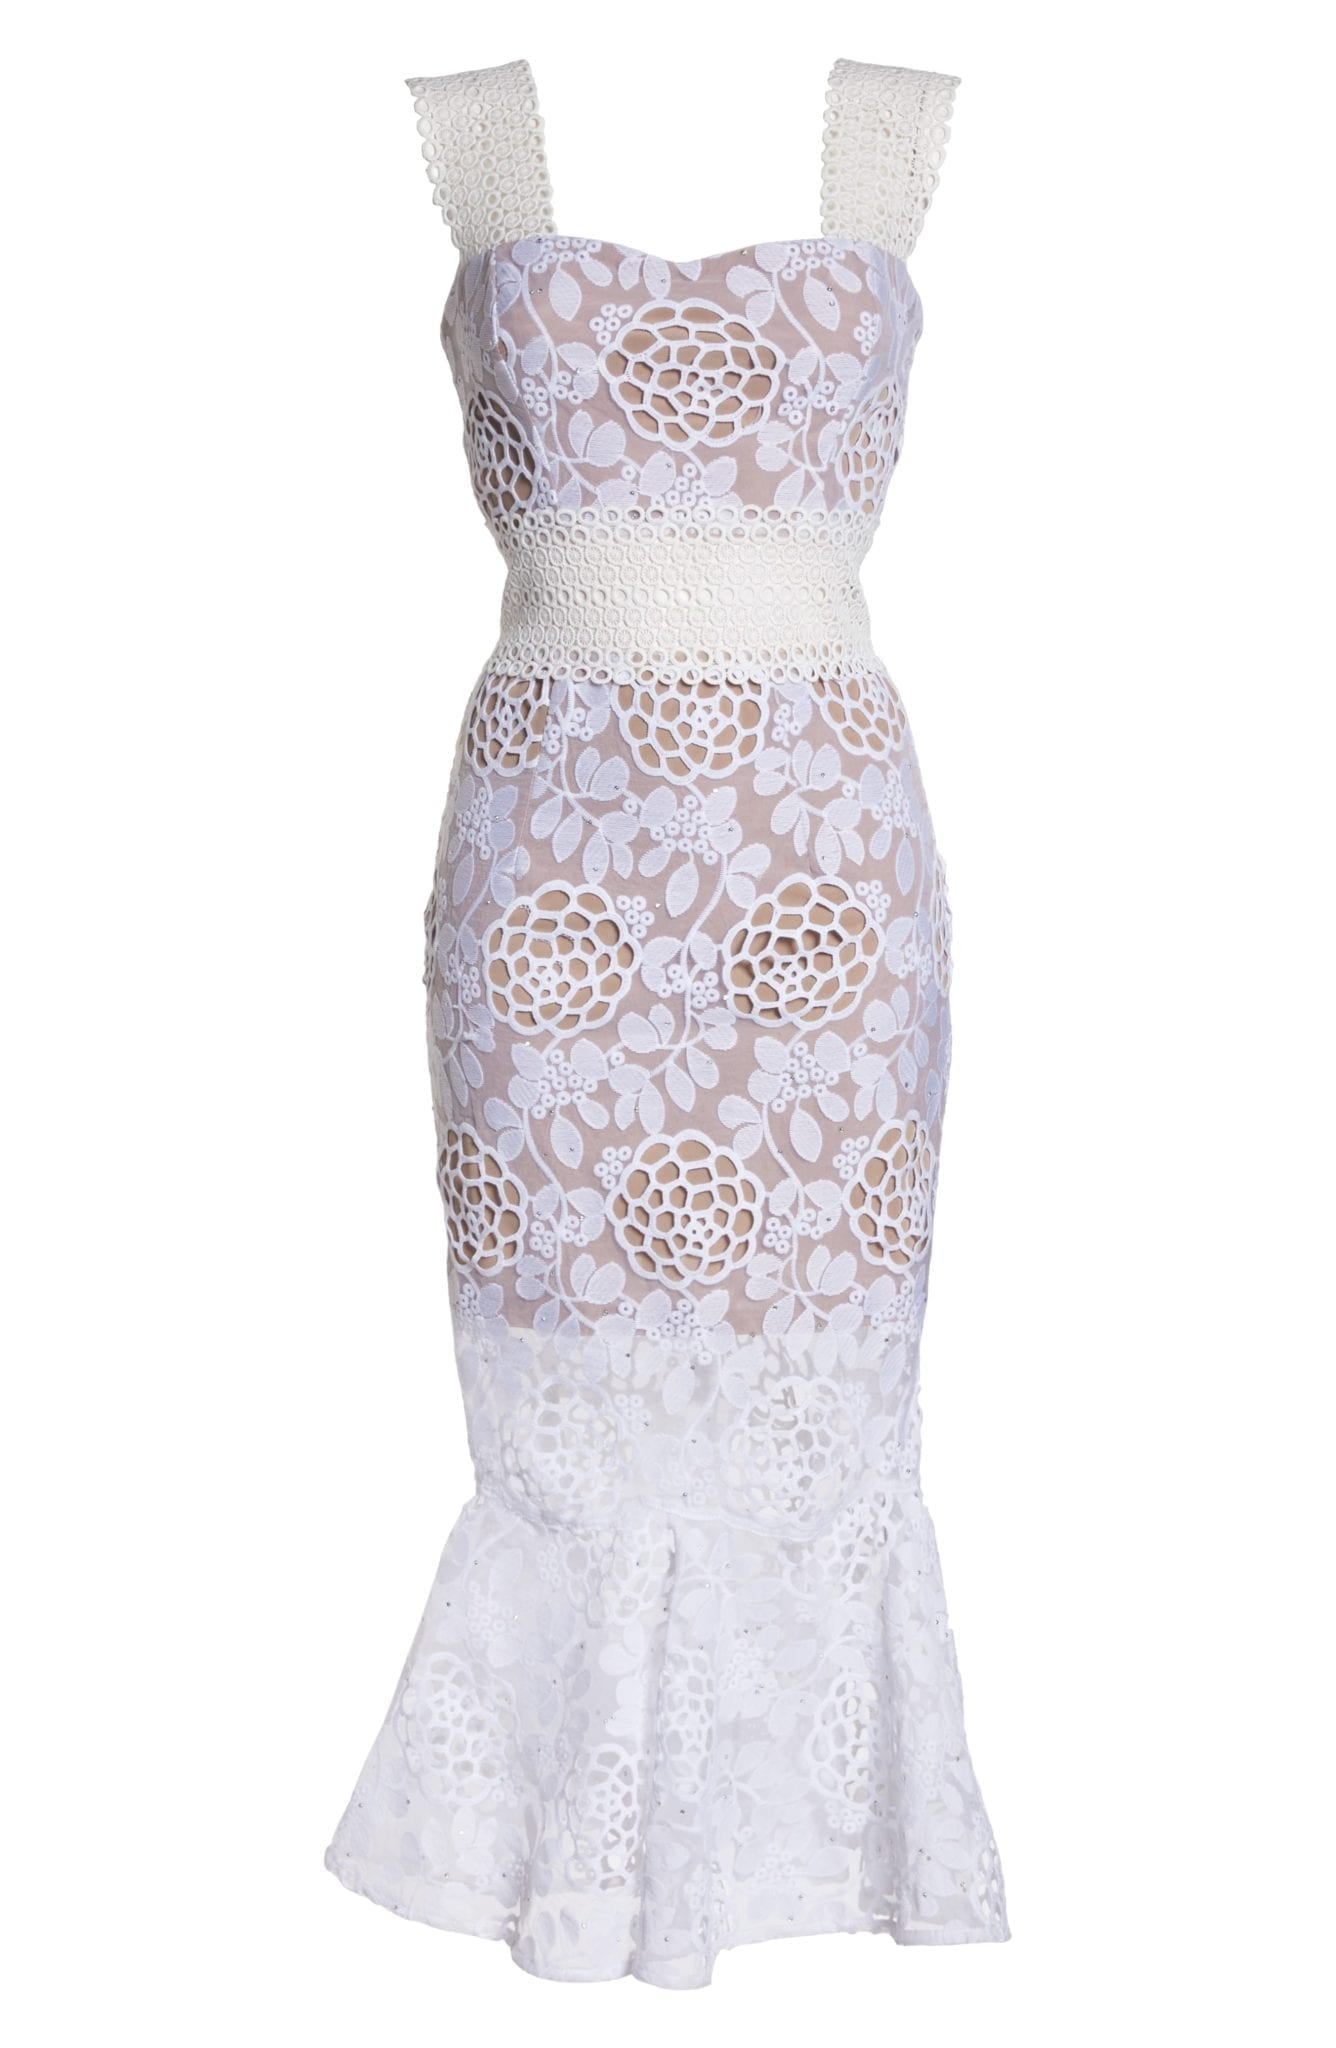 BRONX AND BANCO Floral Lace Midi White Dress - We Select